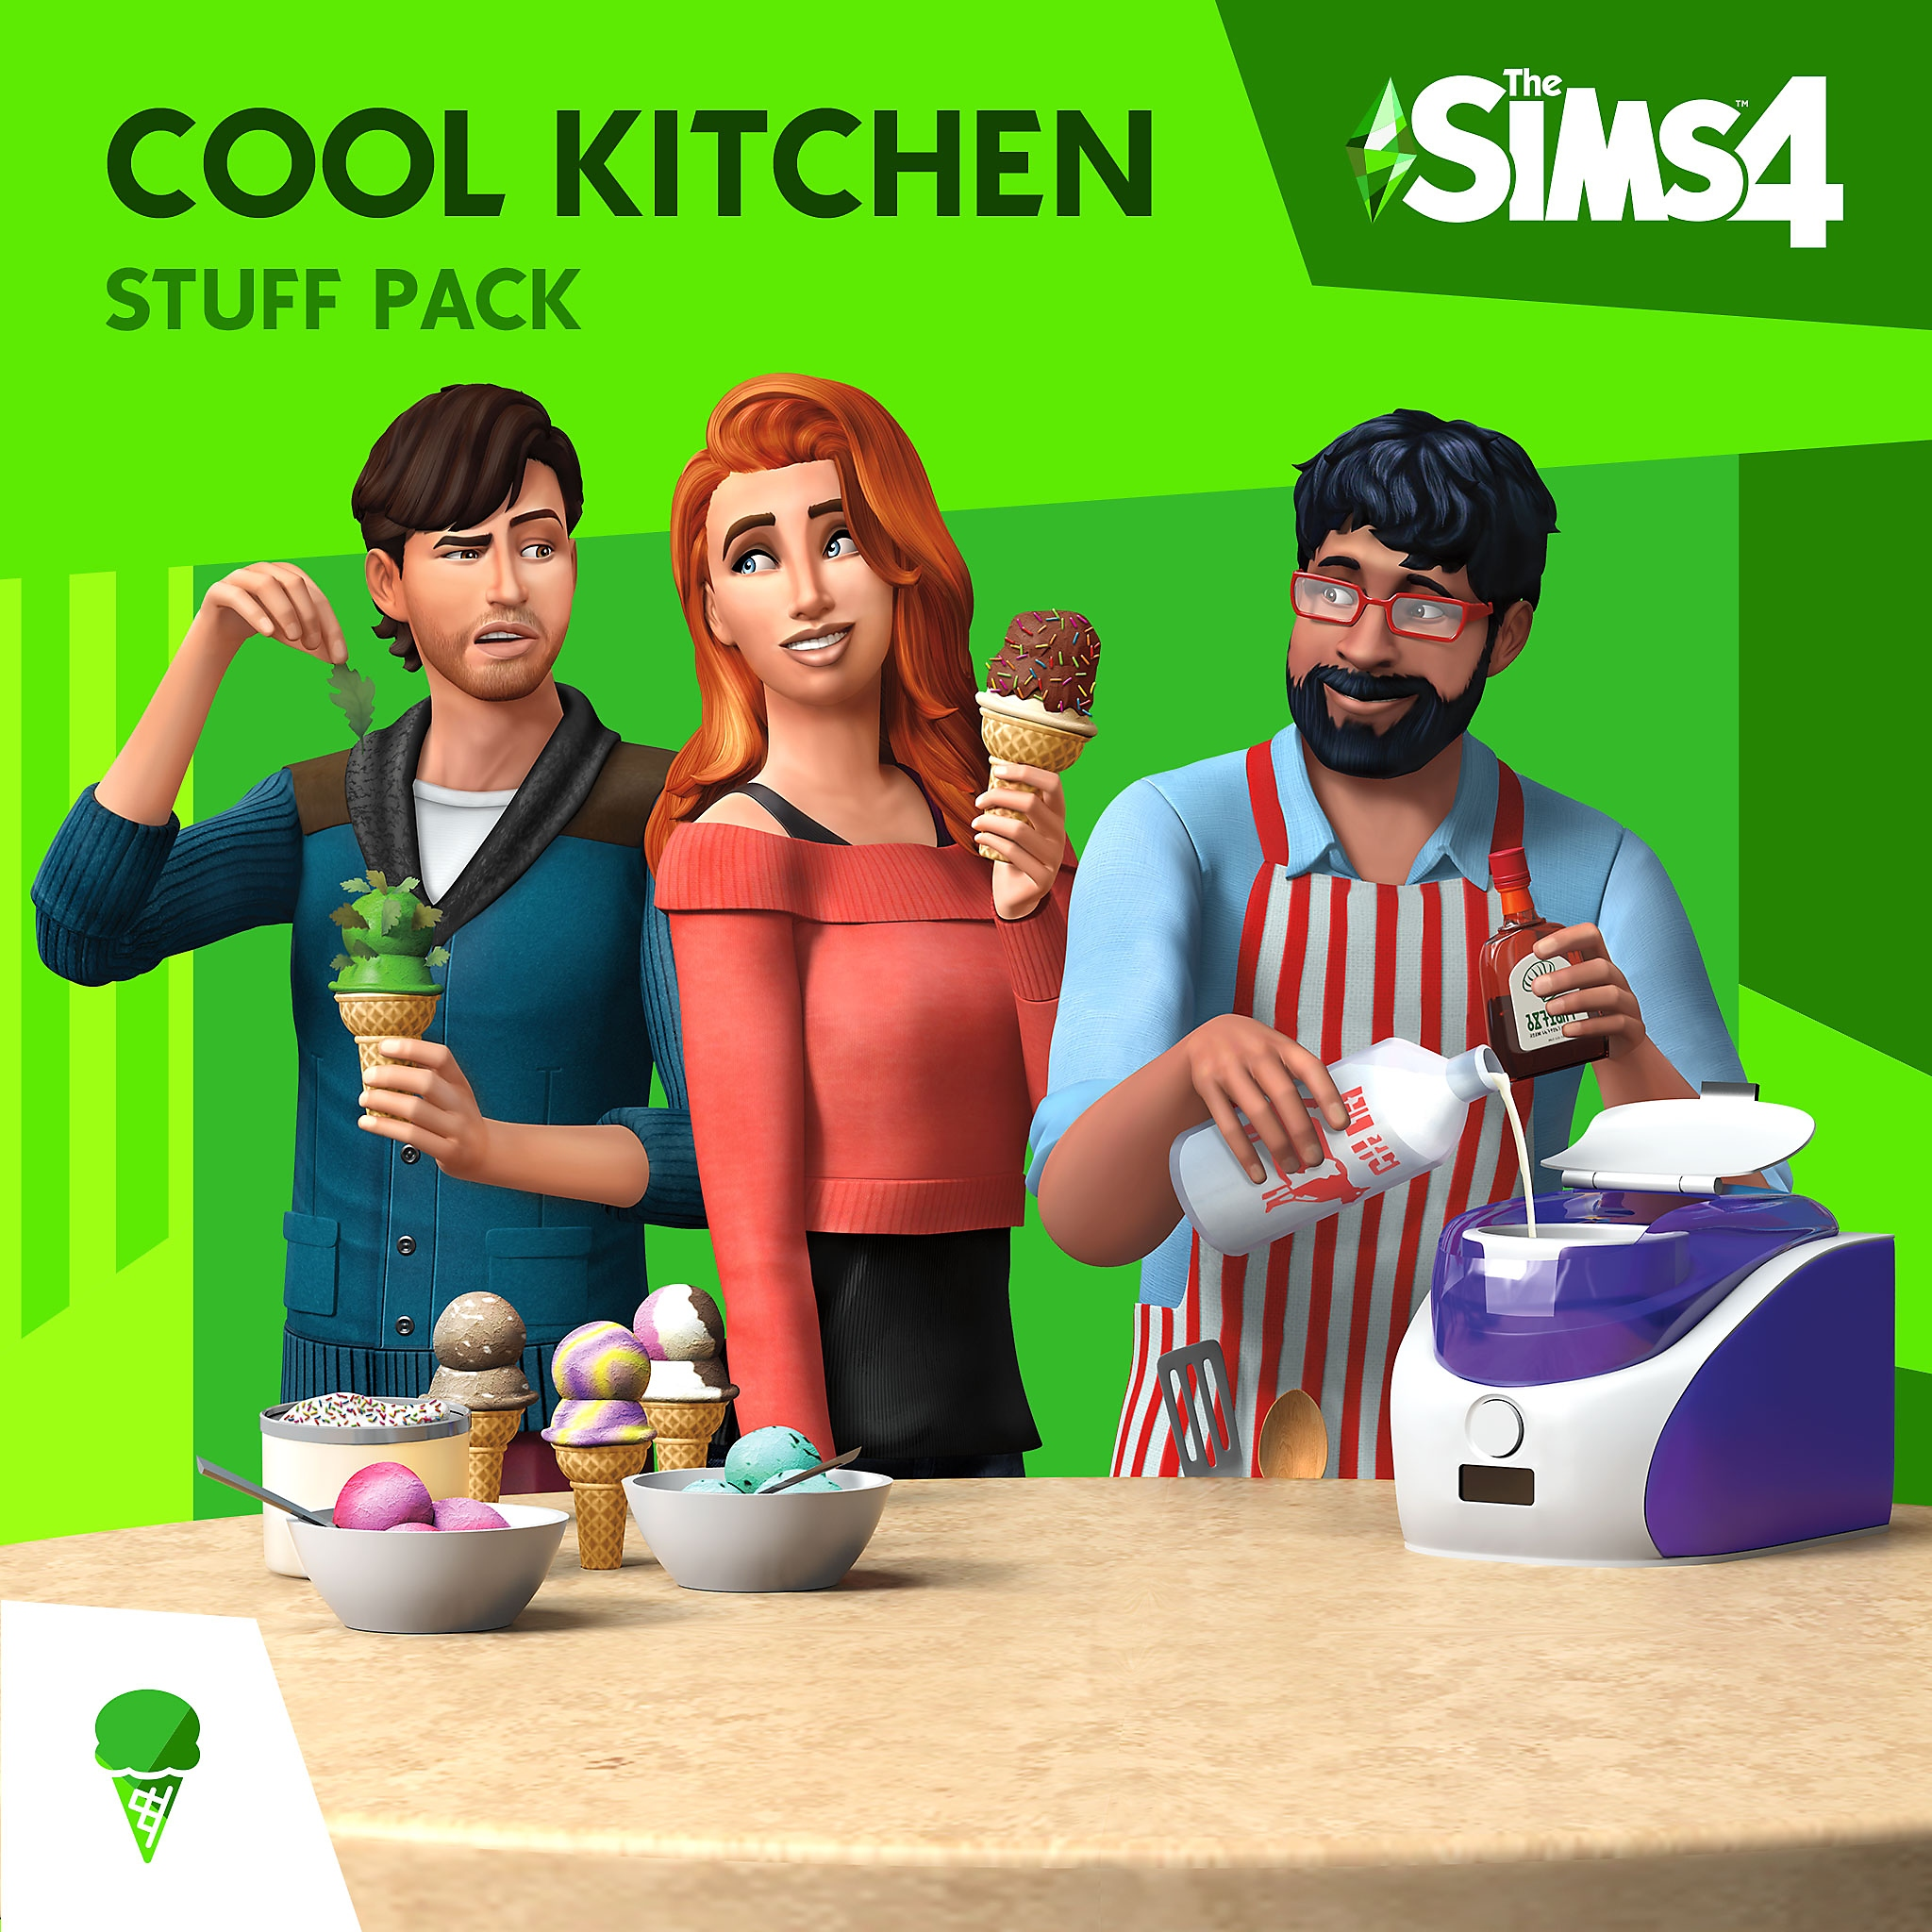 Cool Kitchen Stuff Pack